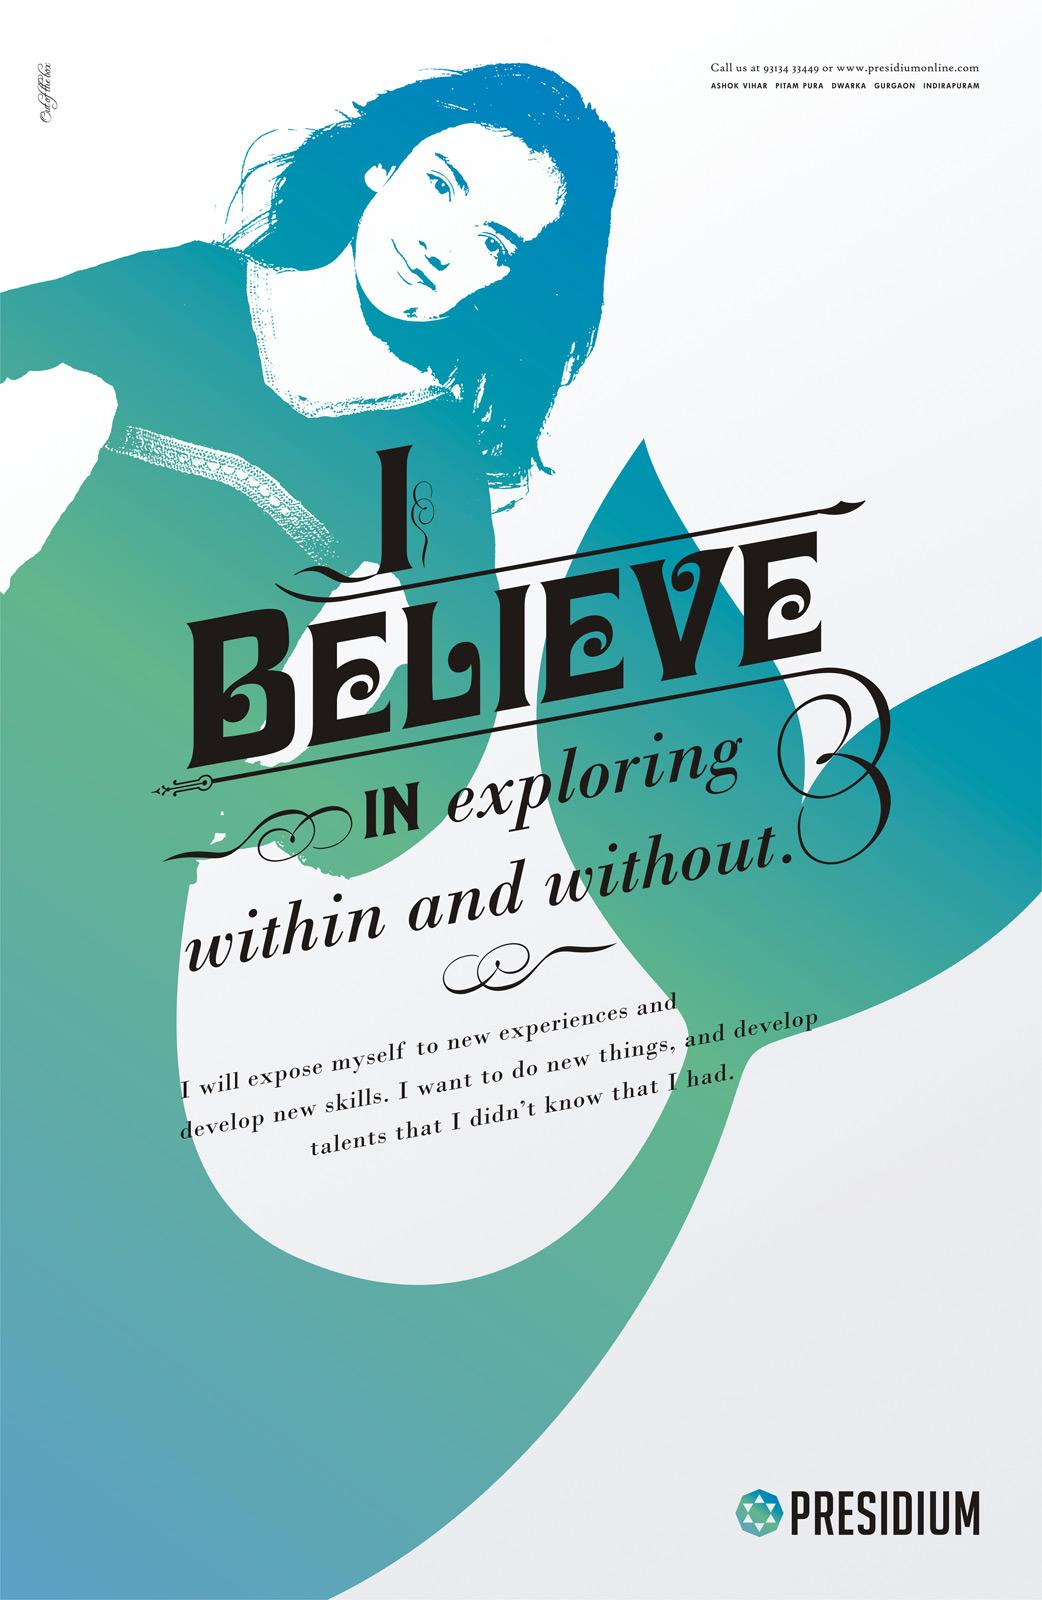 Presidium Print Ad -  I believe in exploring within and without